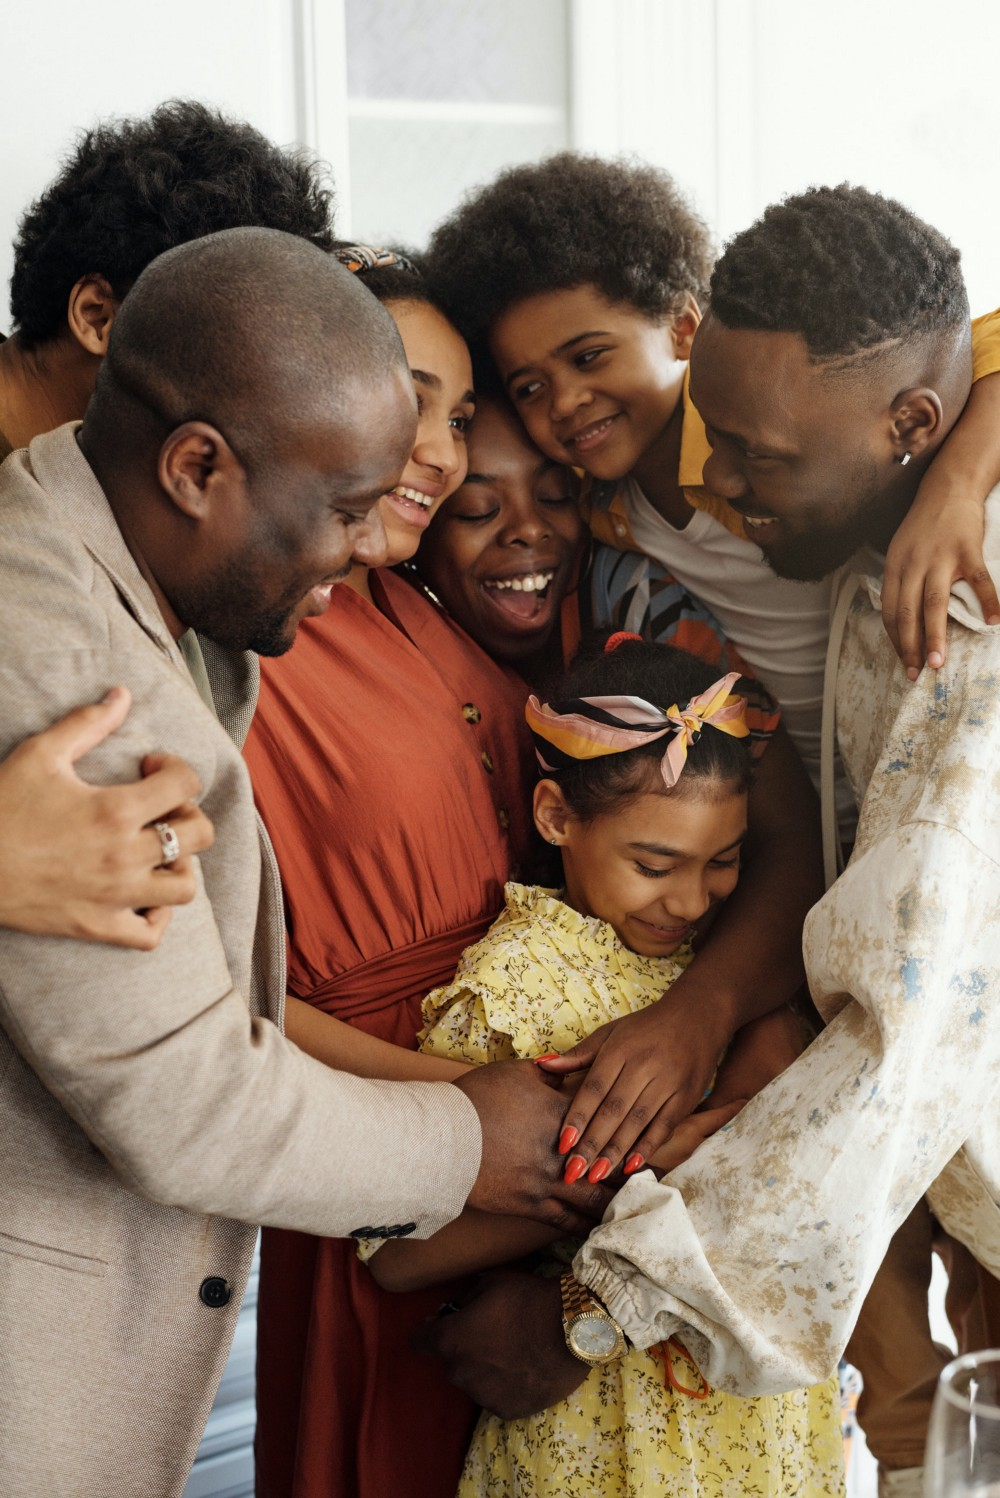 A happy Black family of all ages